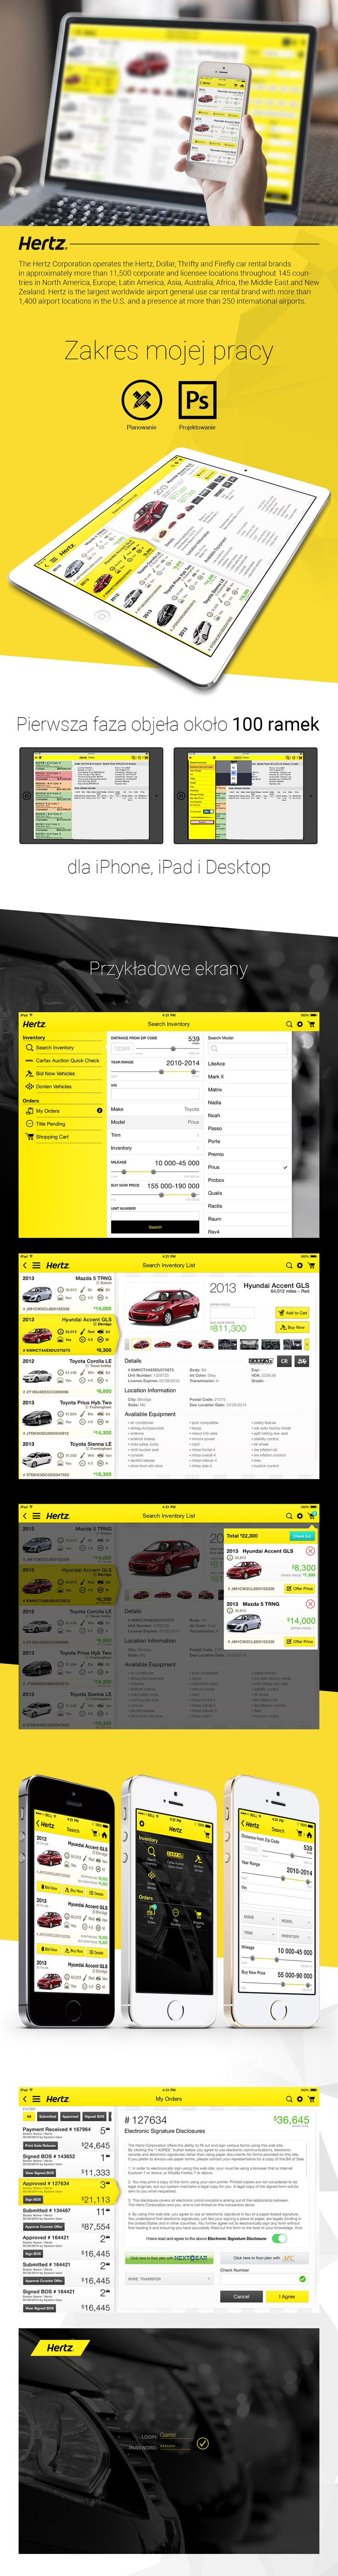 Hertz Mobile | UI/UX | User Interface | Photoshop